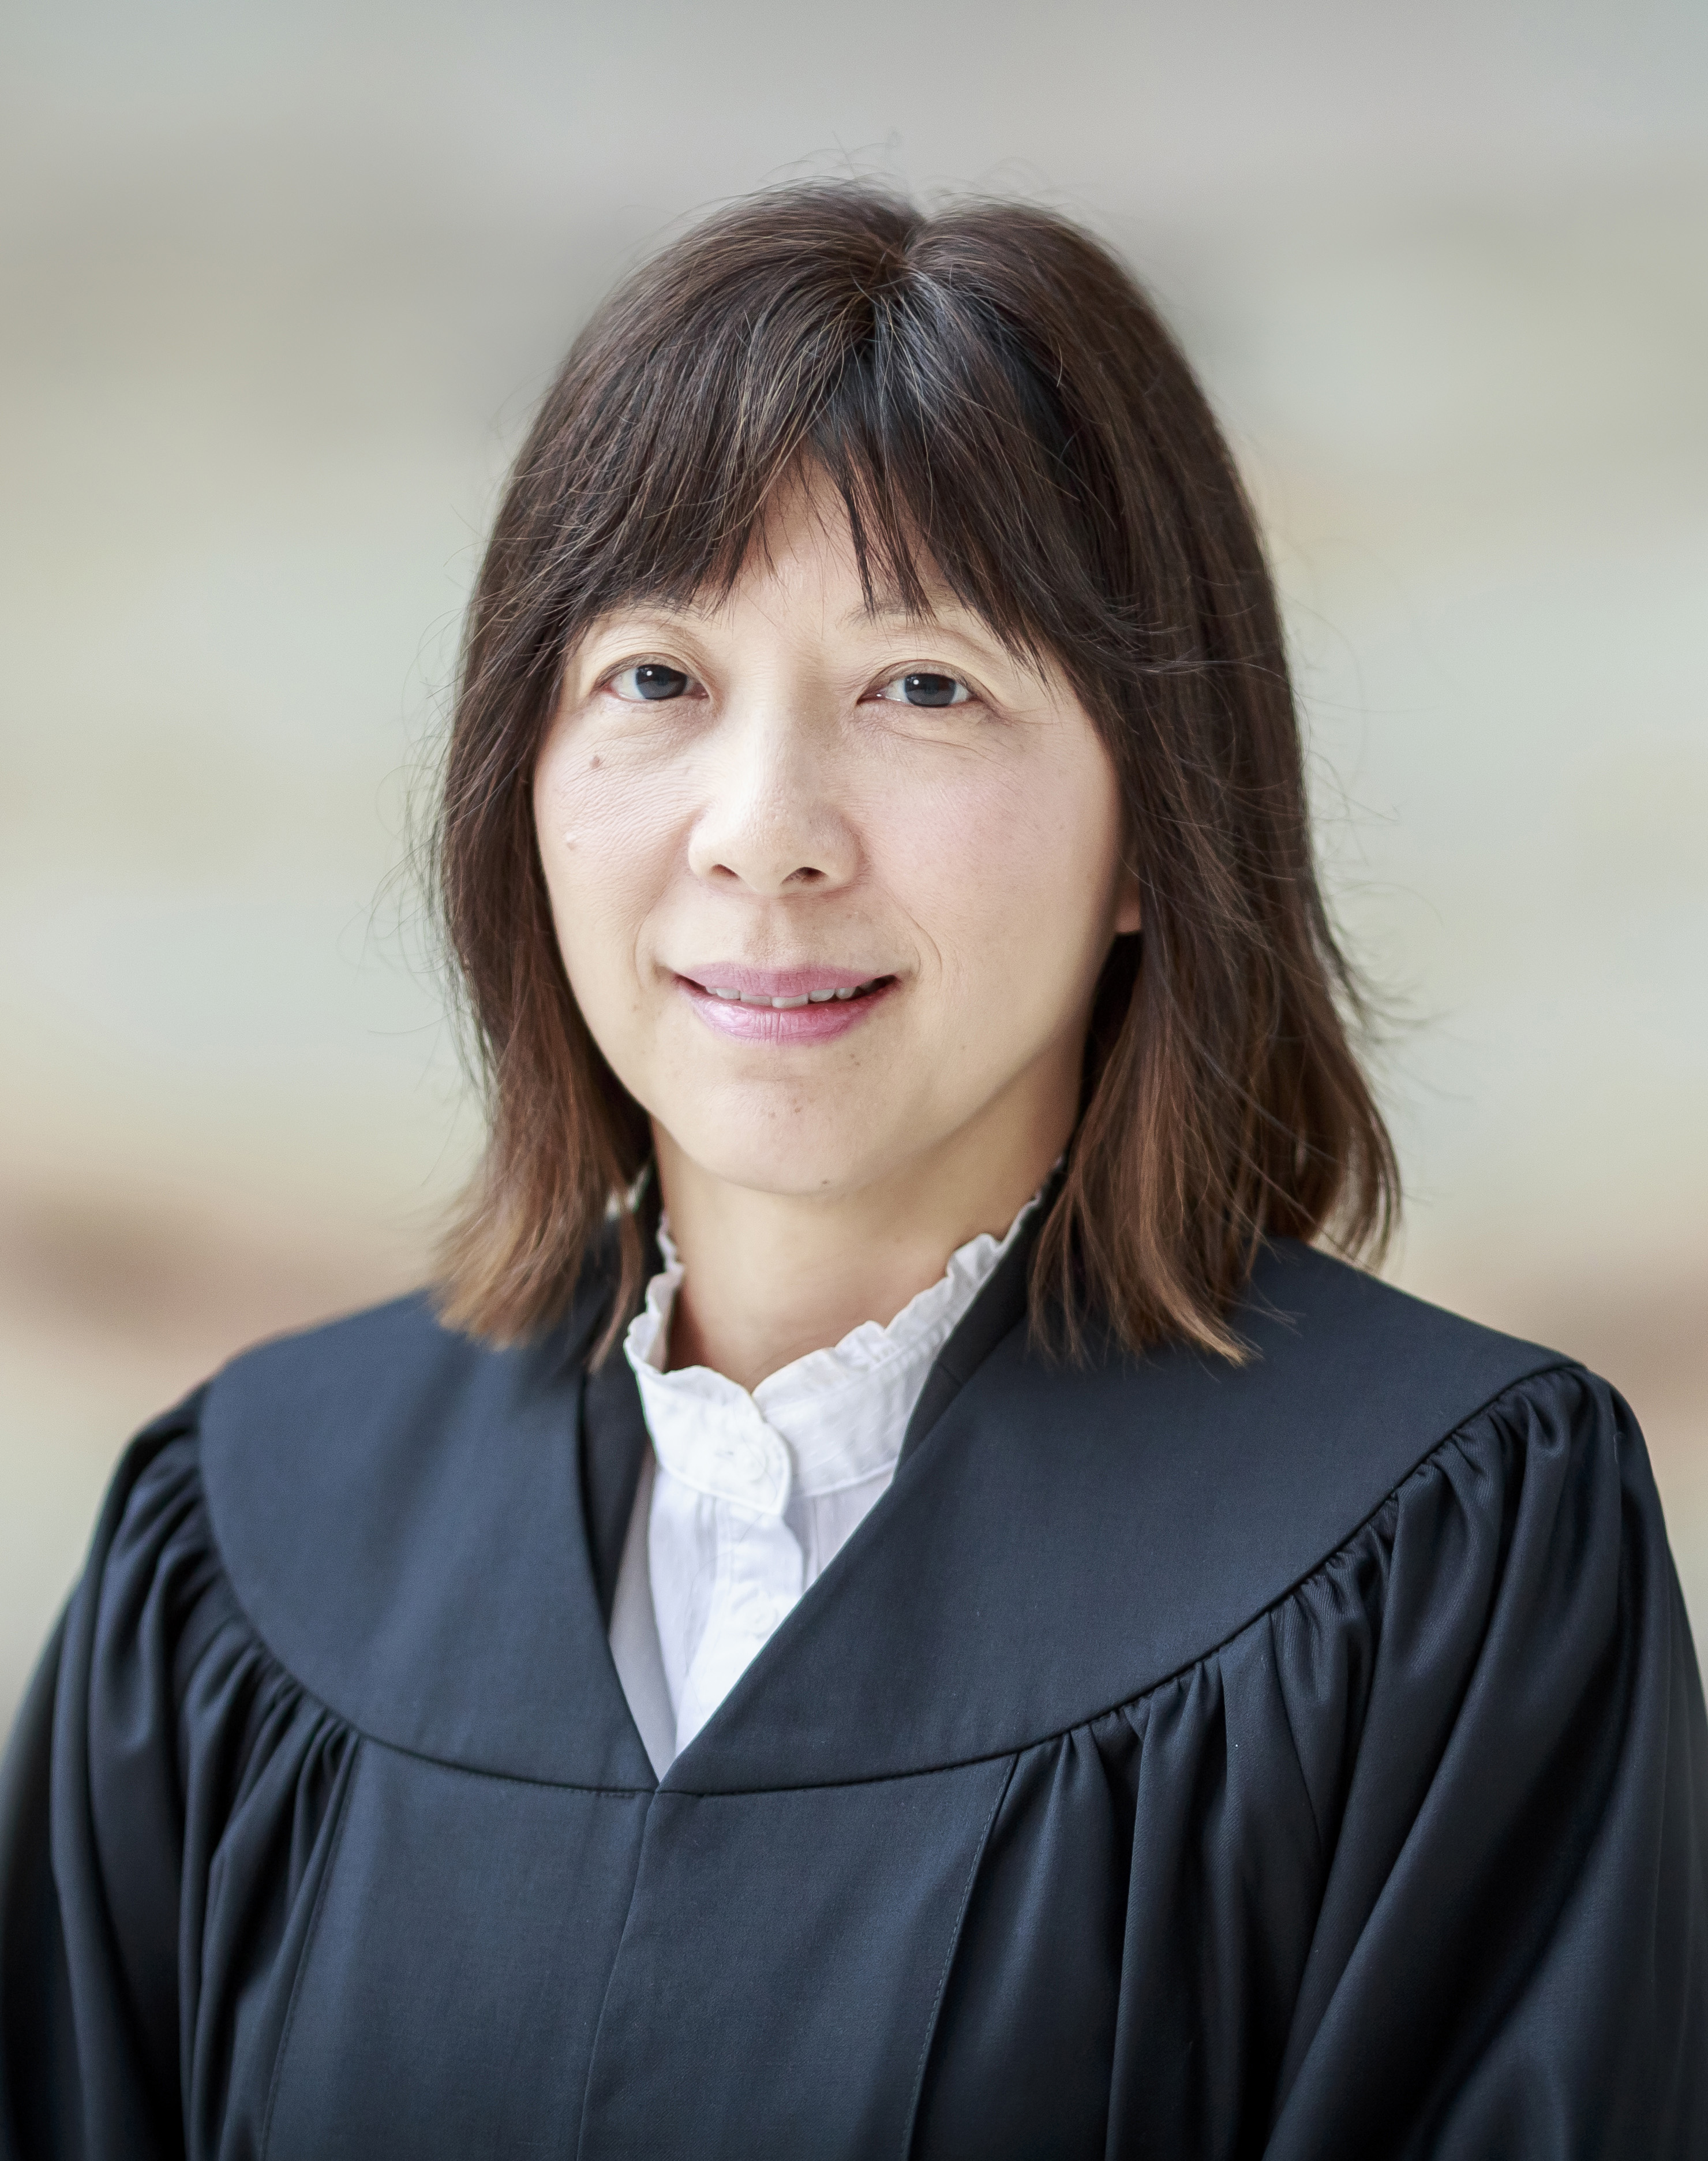 Portrait of Justice Debbie Ong, High Court Judge